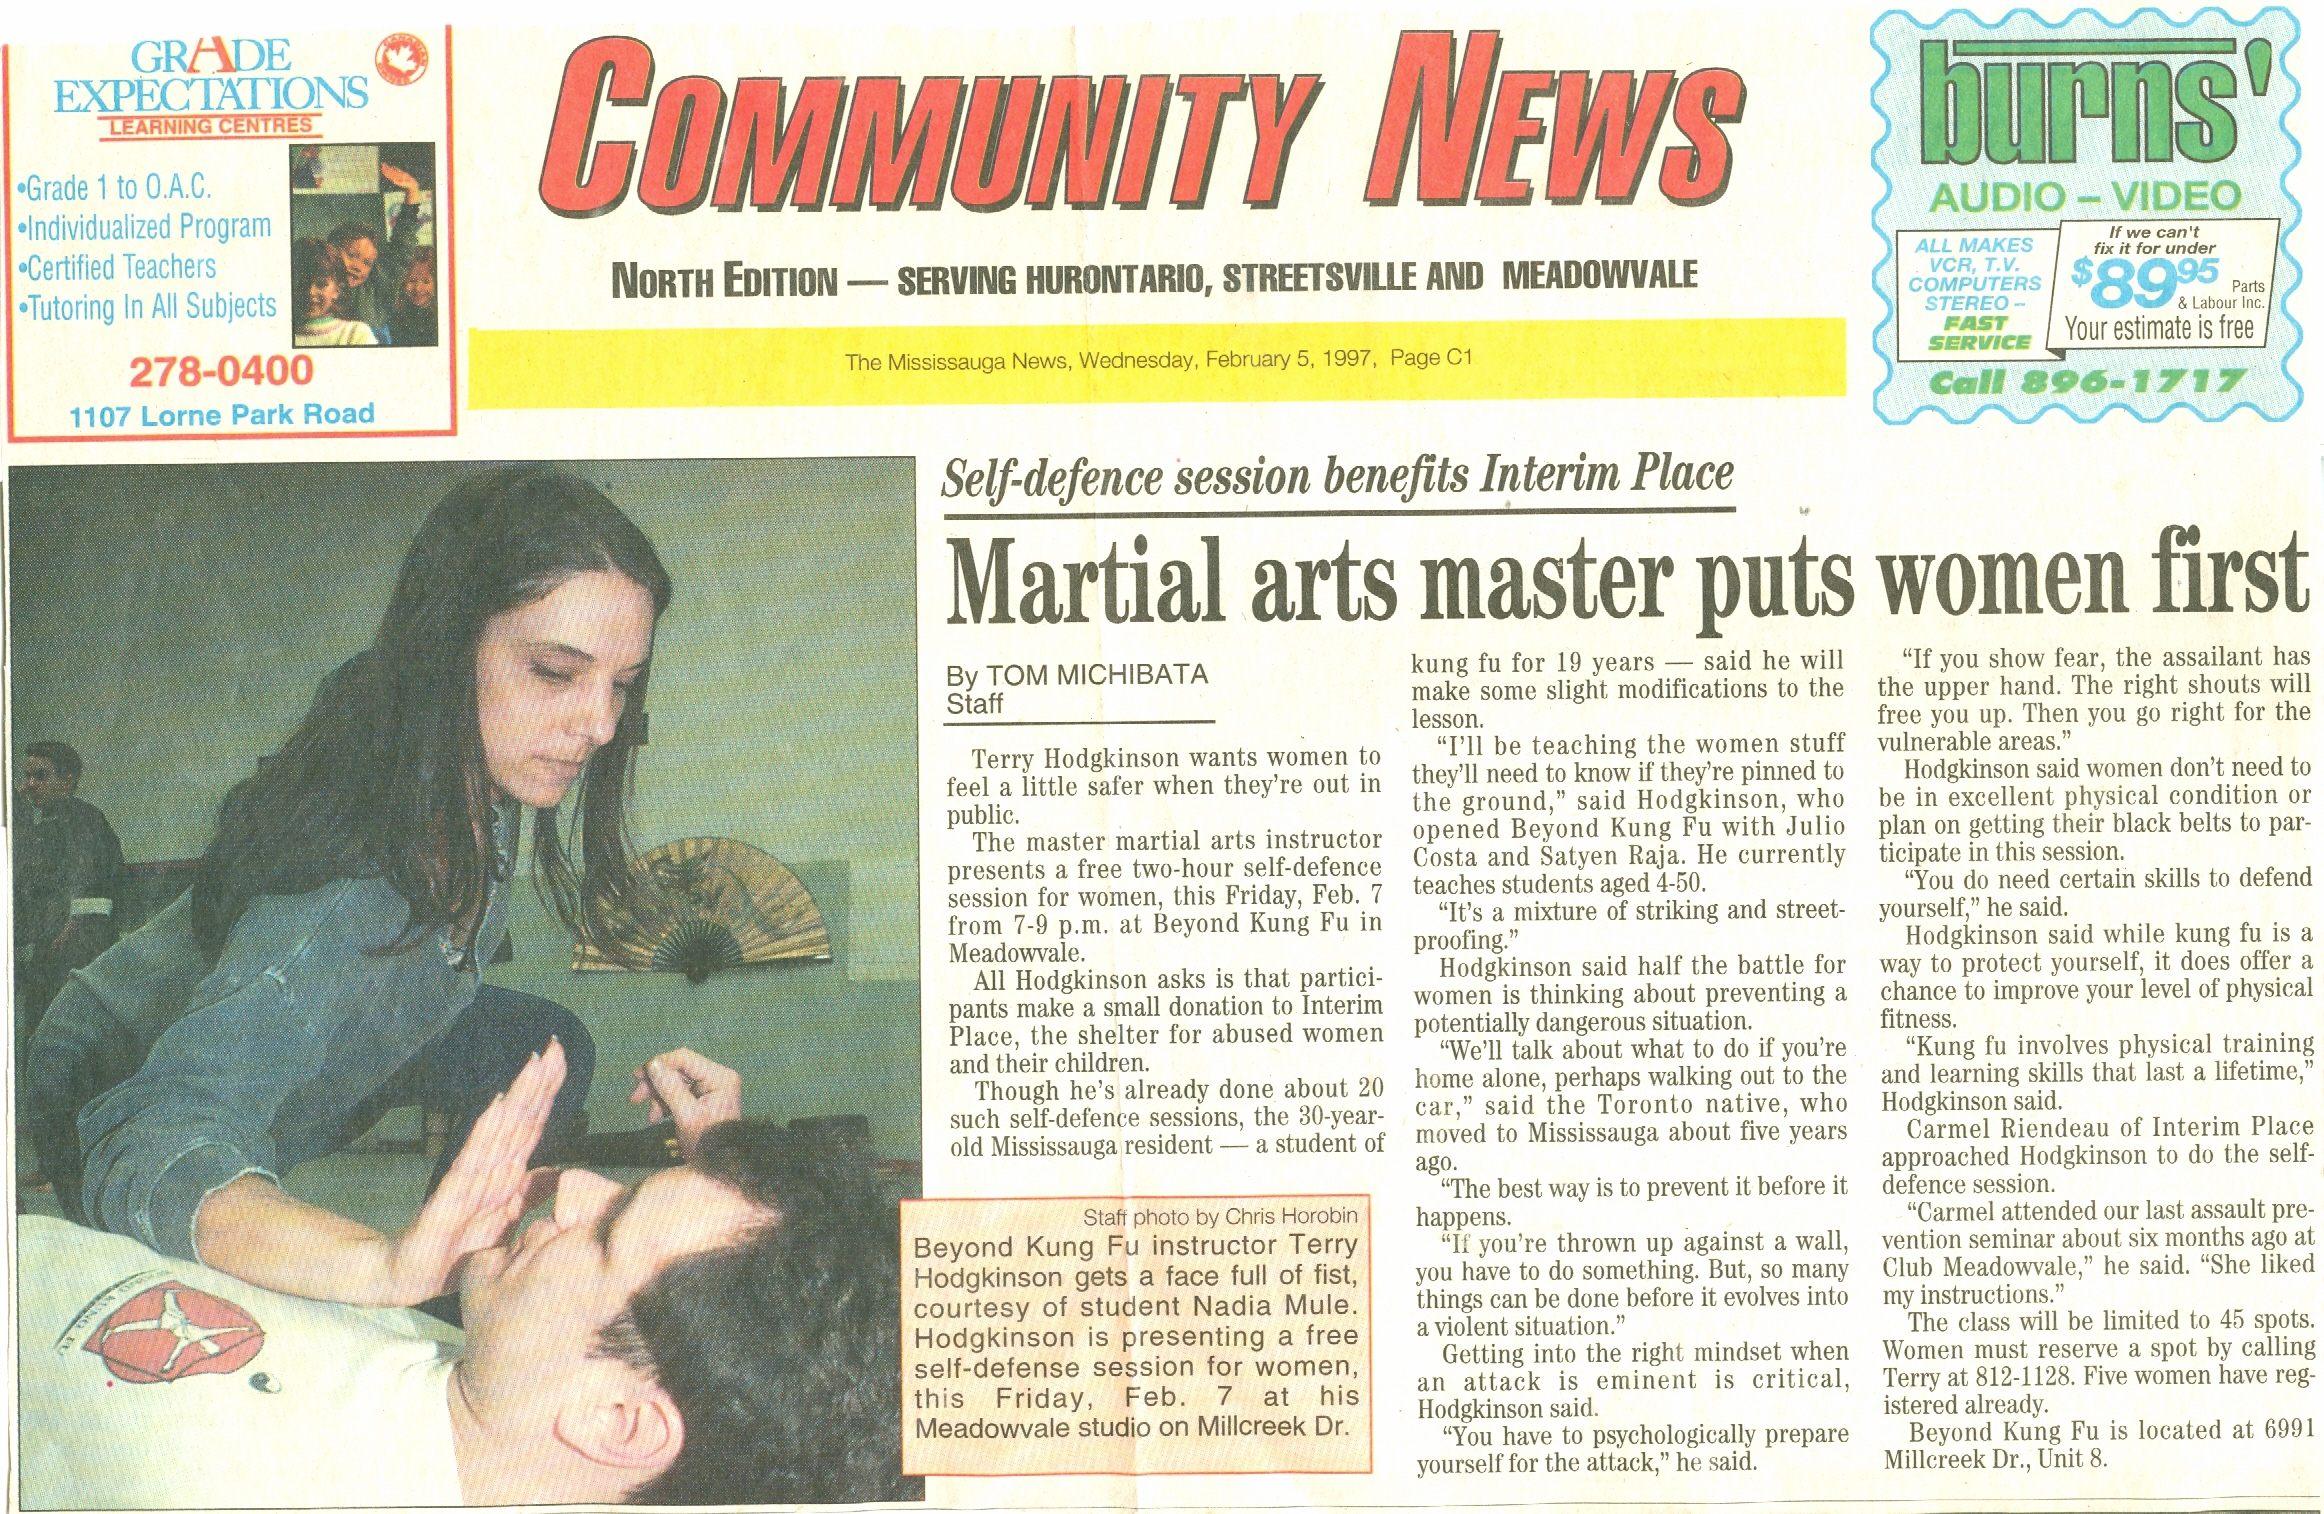 Terry Hodgkinson's women's self defence training in the newspaper